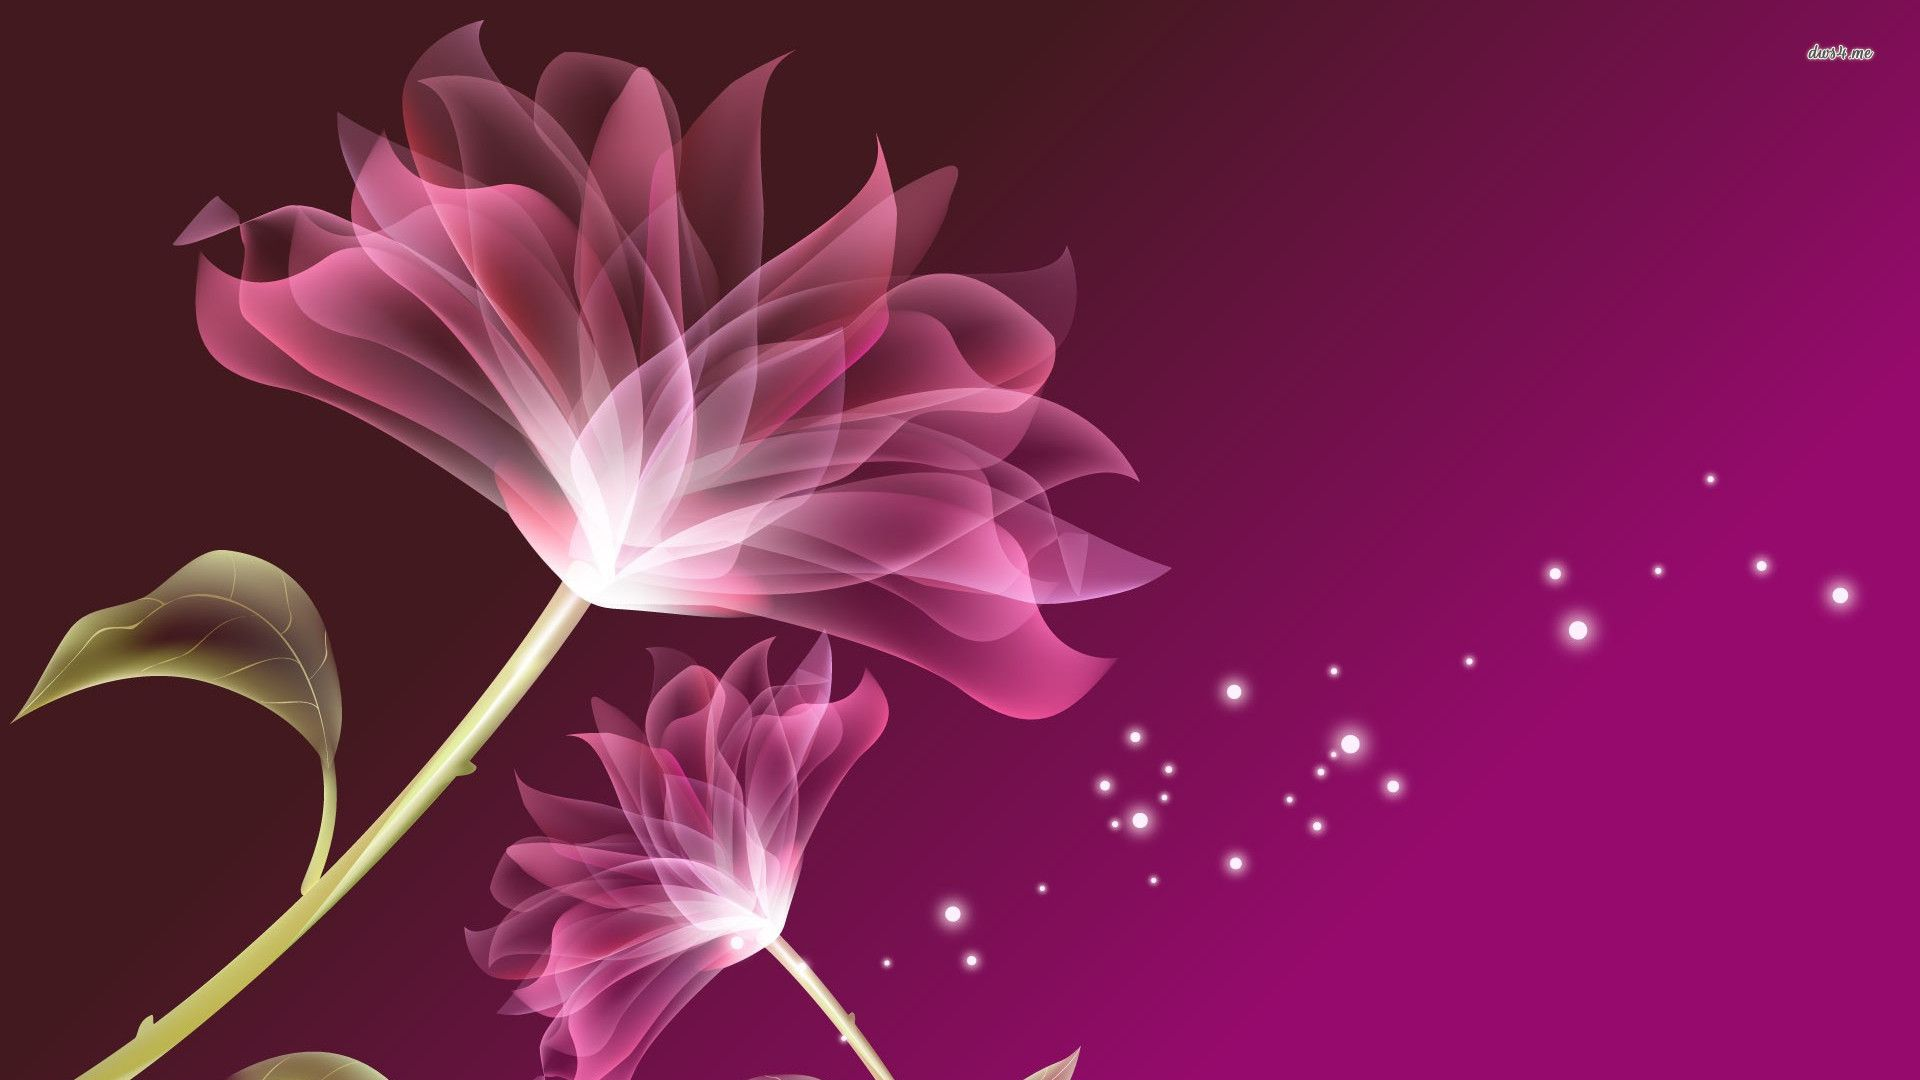 digital flowers purple flower wallpaper digital art